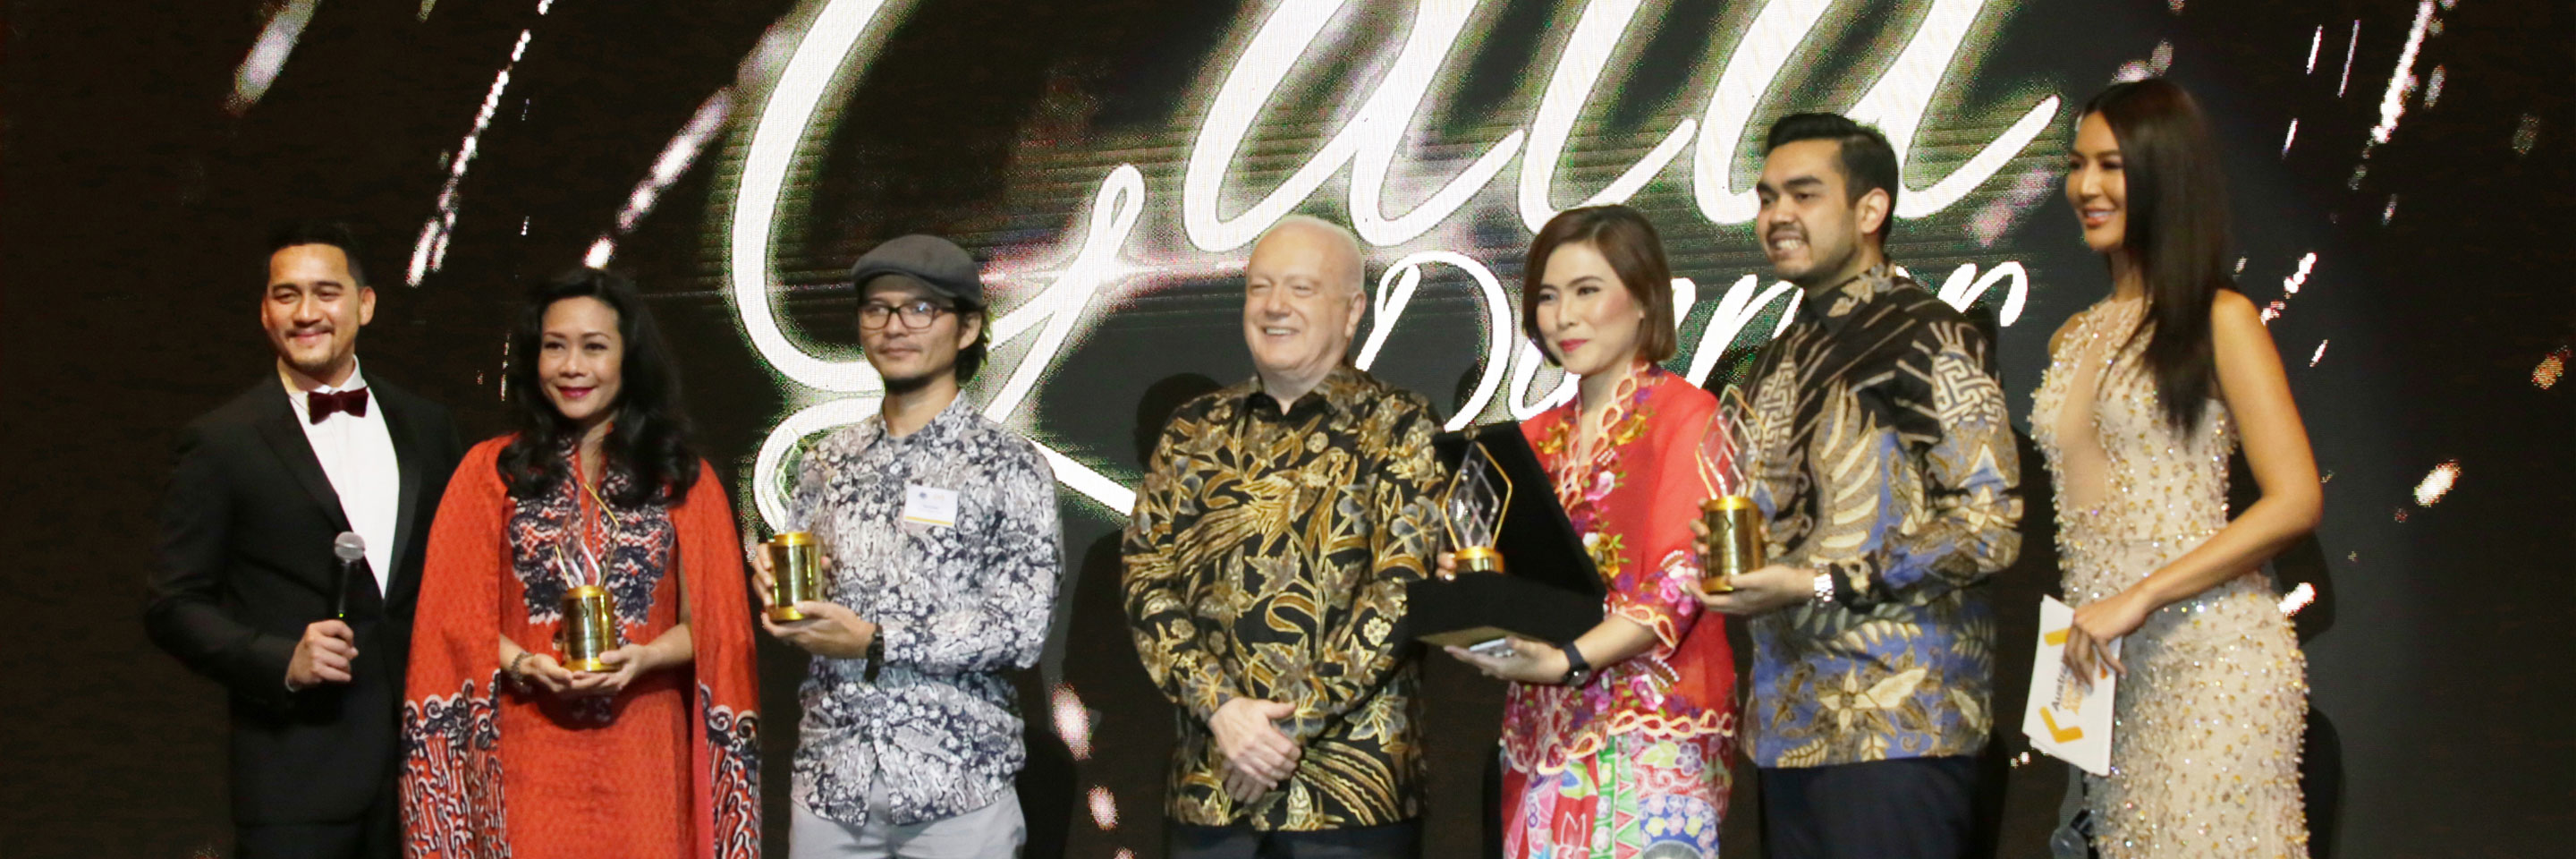 Australian Ambassador to Indonesia, HE Gary Quinlan AO, presents the 2019 Alumni Award winners at the Alumni Gala Dinner to recognise Australian alumni significant contribution in their fields.